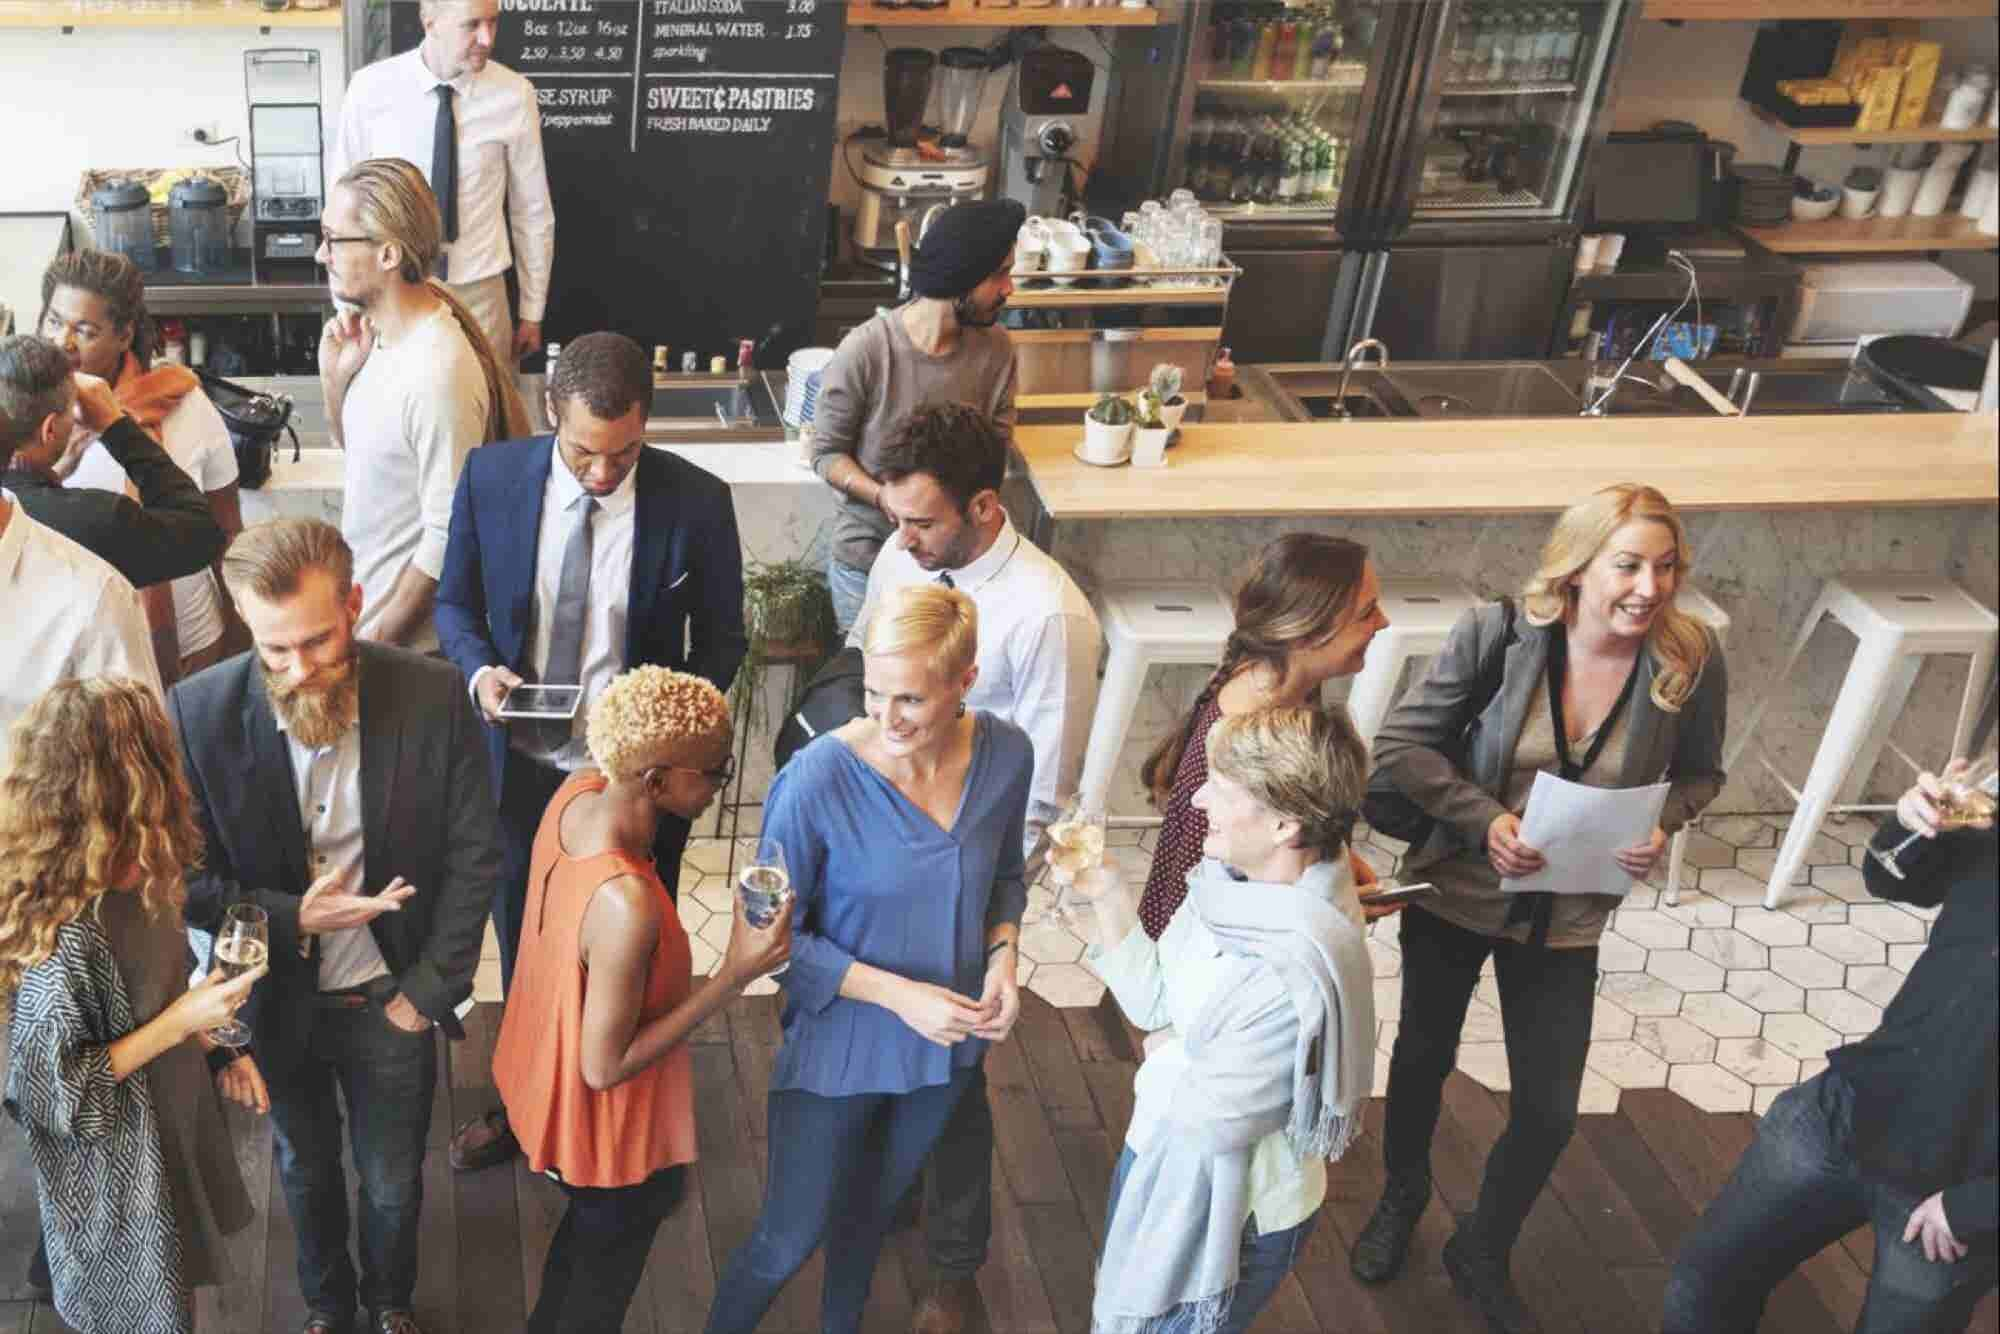 The 12 x 12 x 12 Rule for Successful Networking